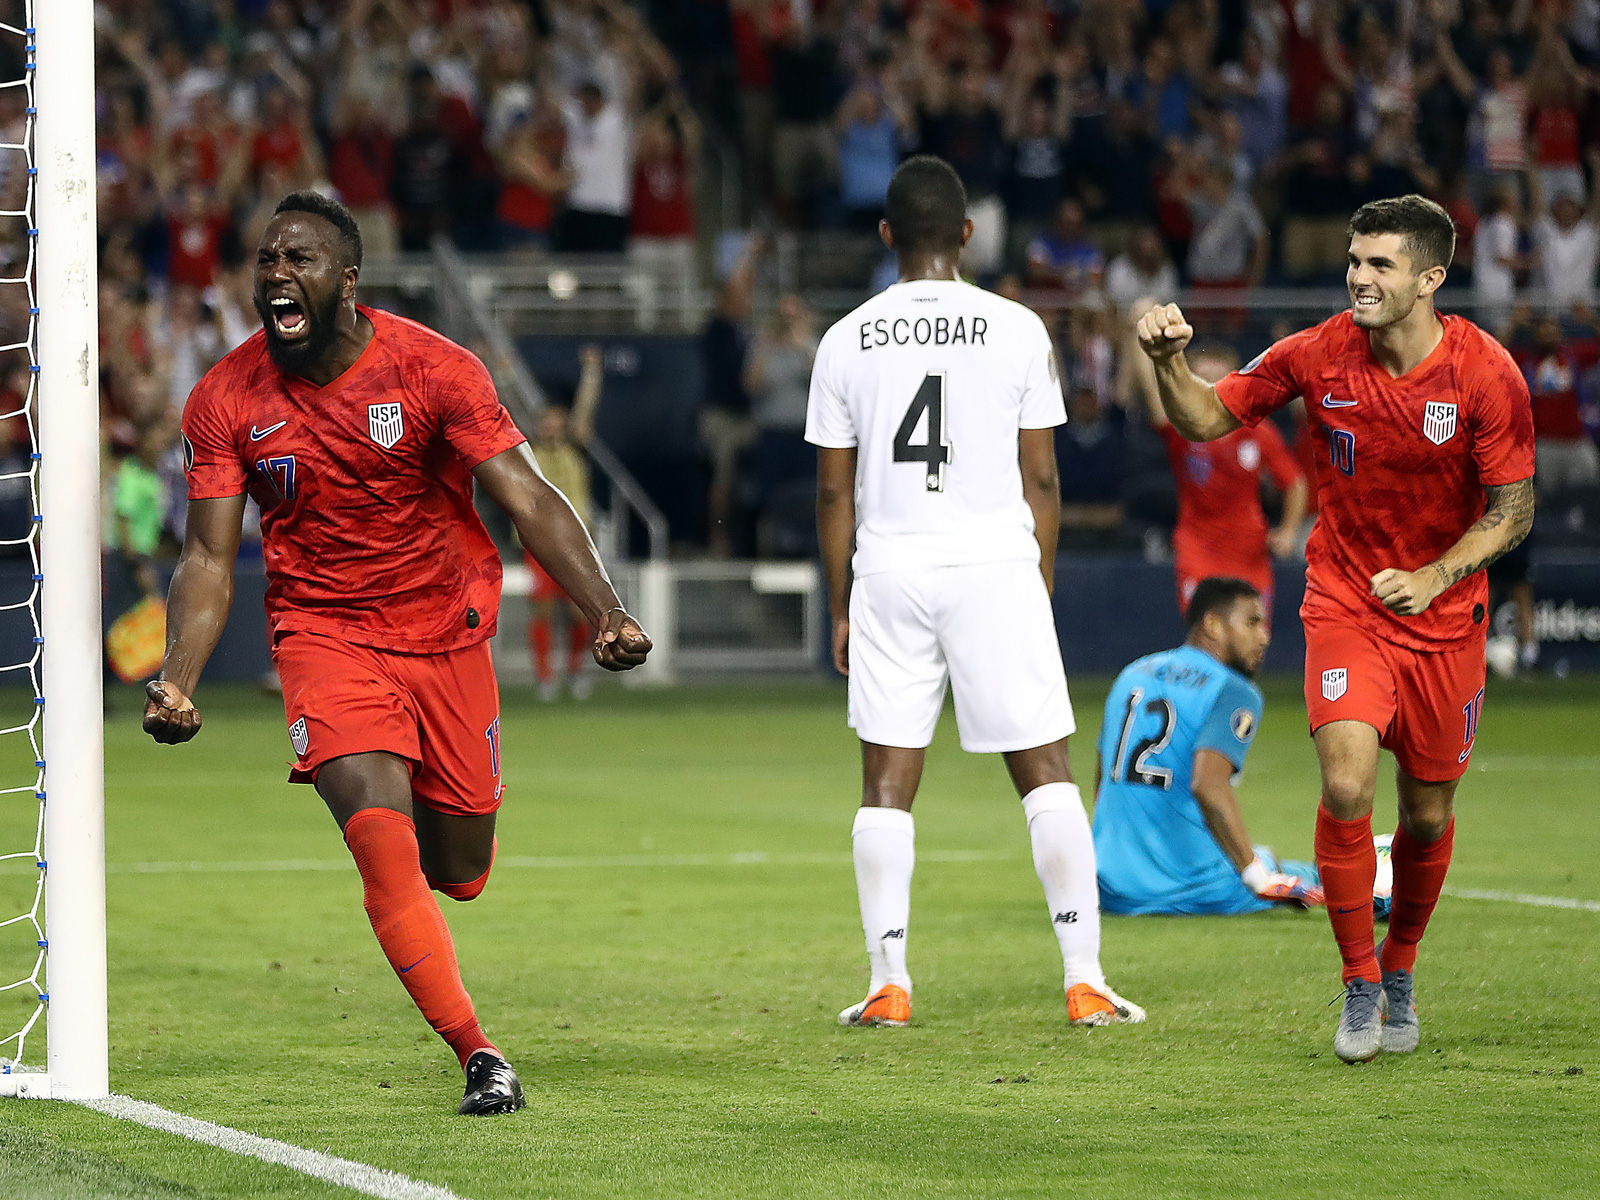 Jozy Altidore and Christian Pulisic celebrate the USA's goal vs. Panama